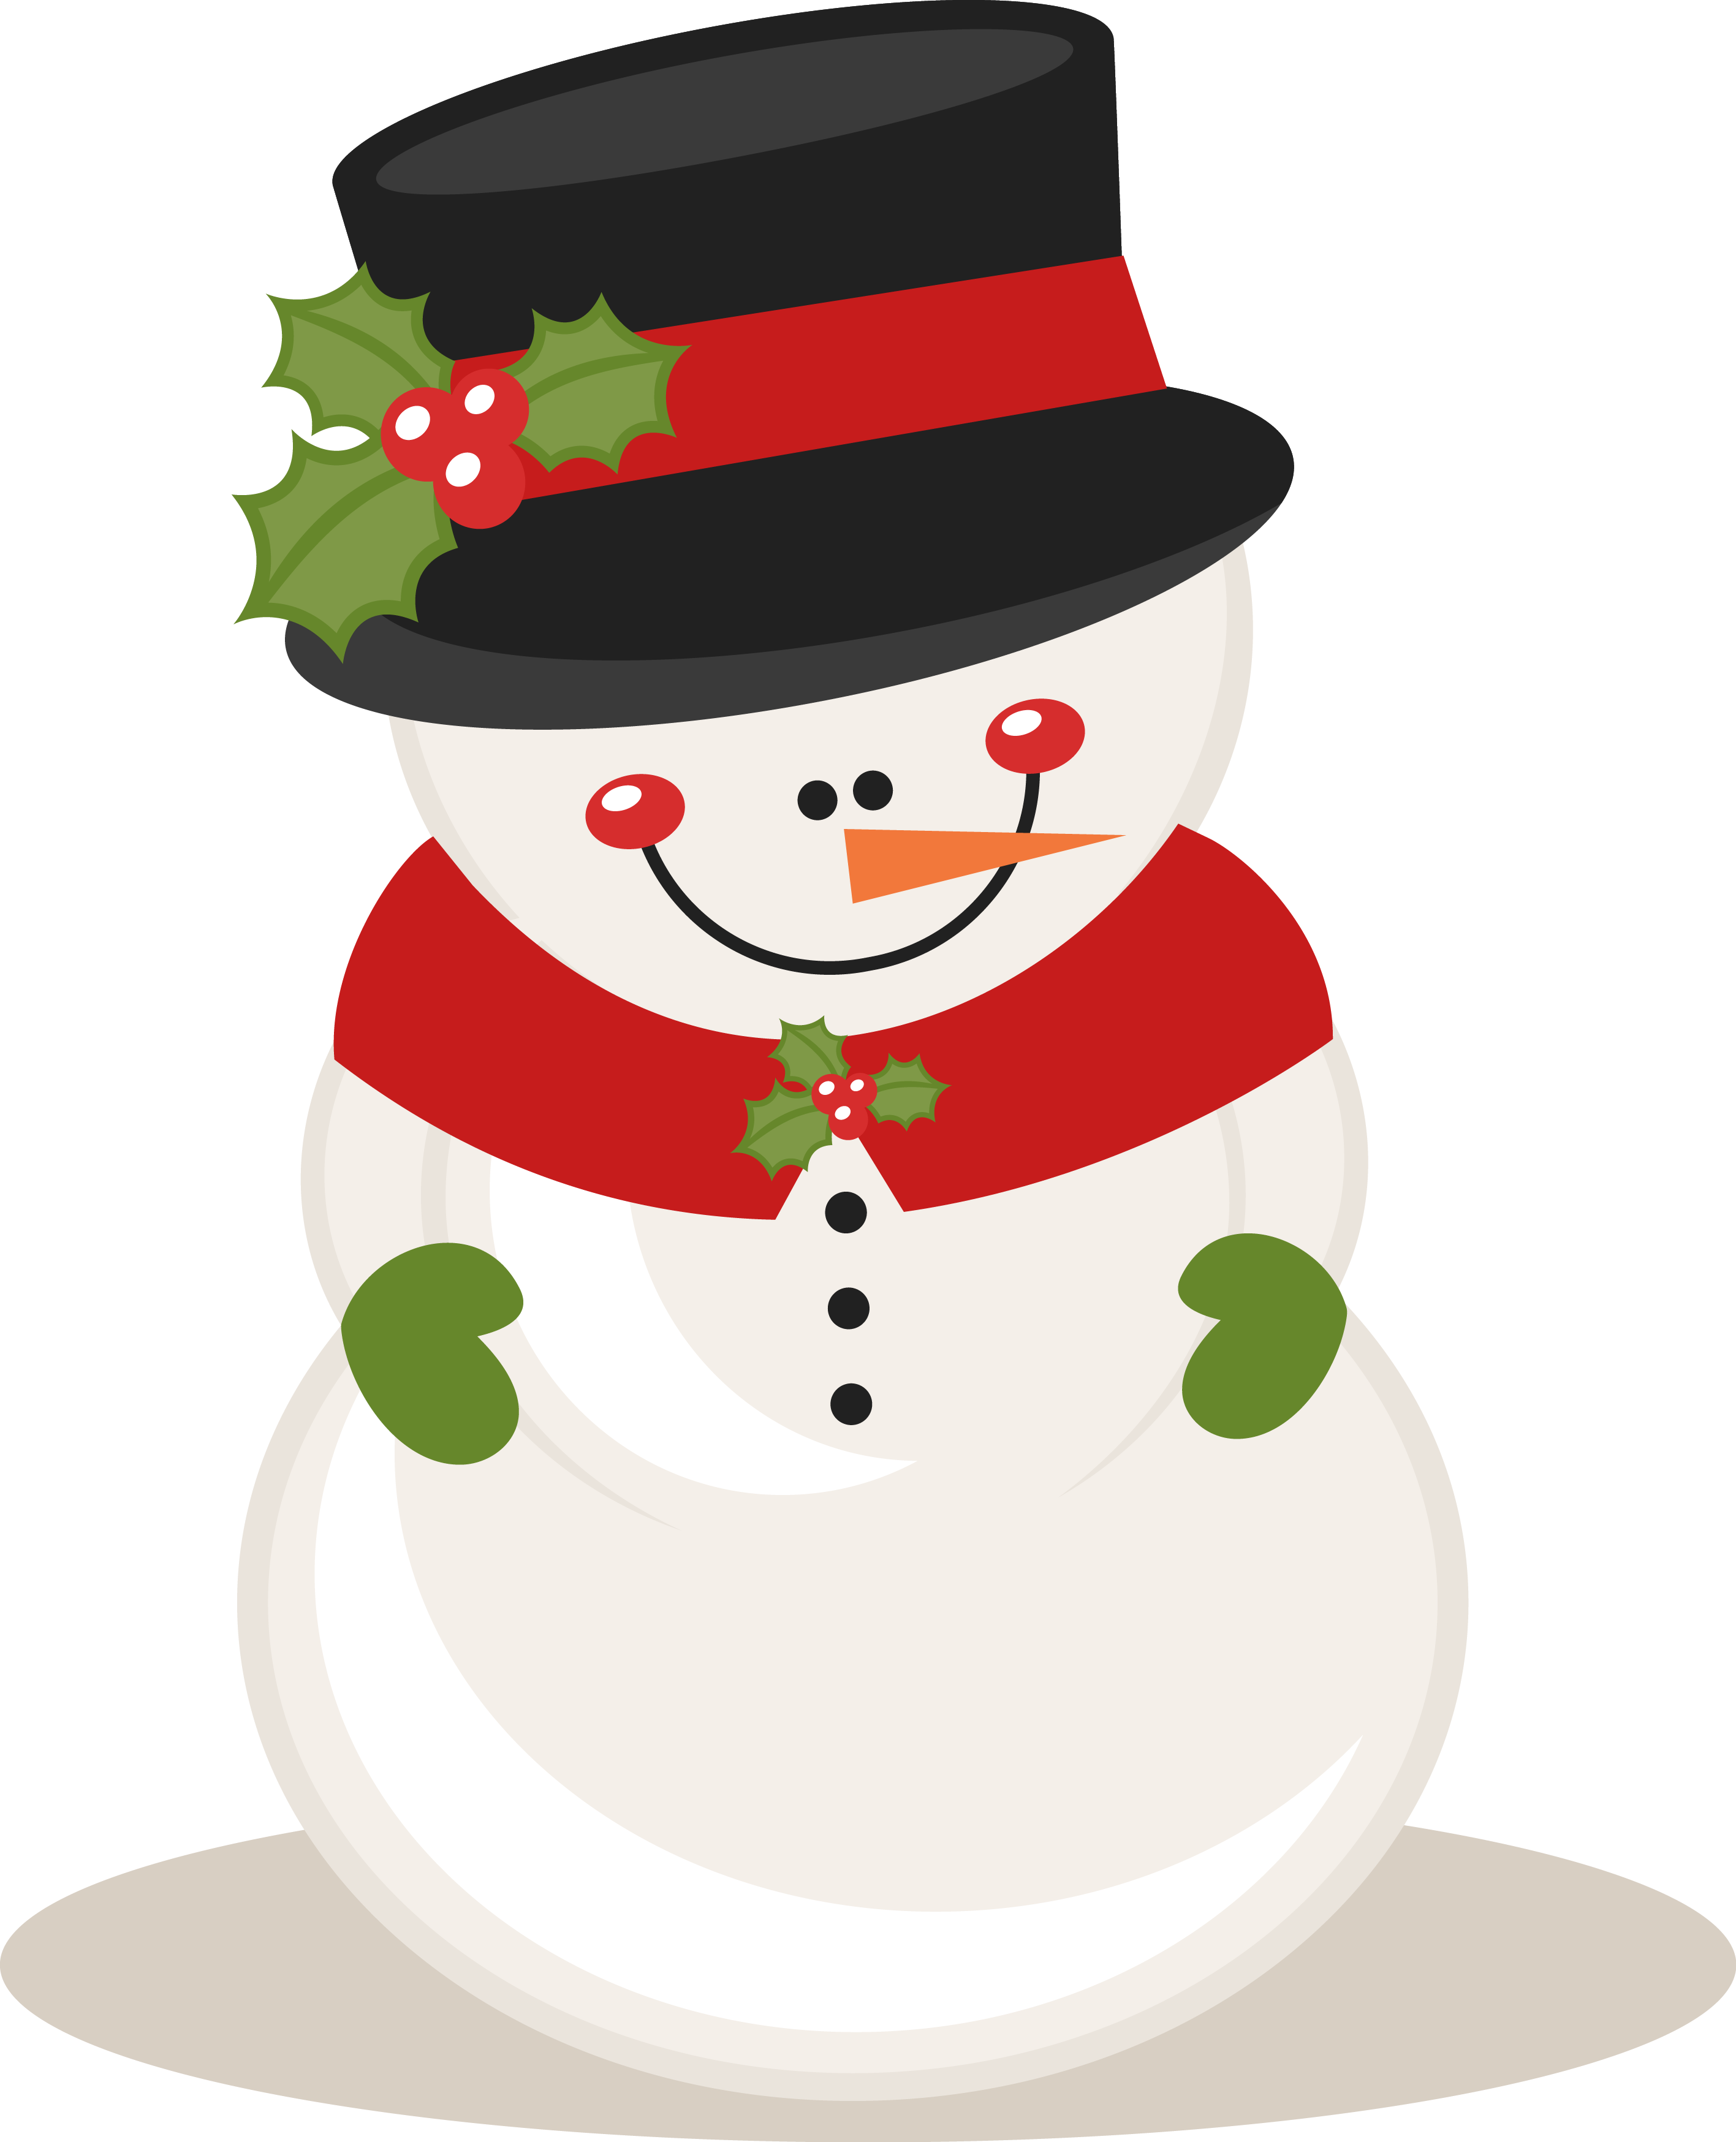 Mkc christmassnowman mu eco. Holly clipart svg clip art library download